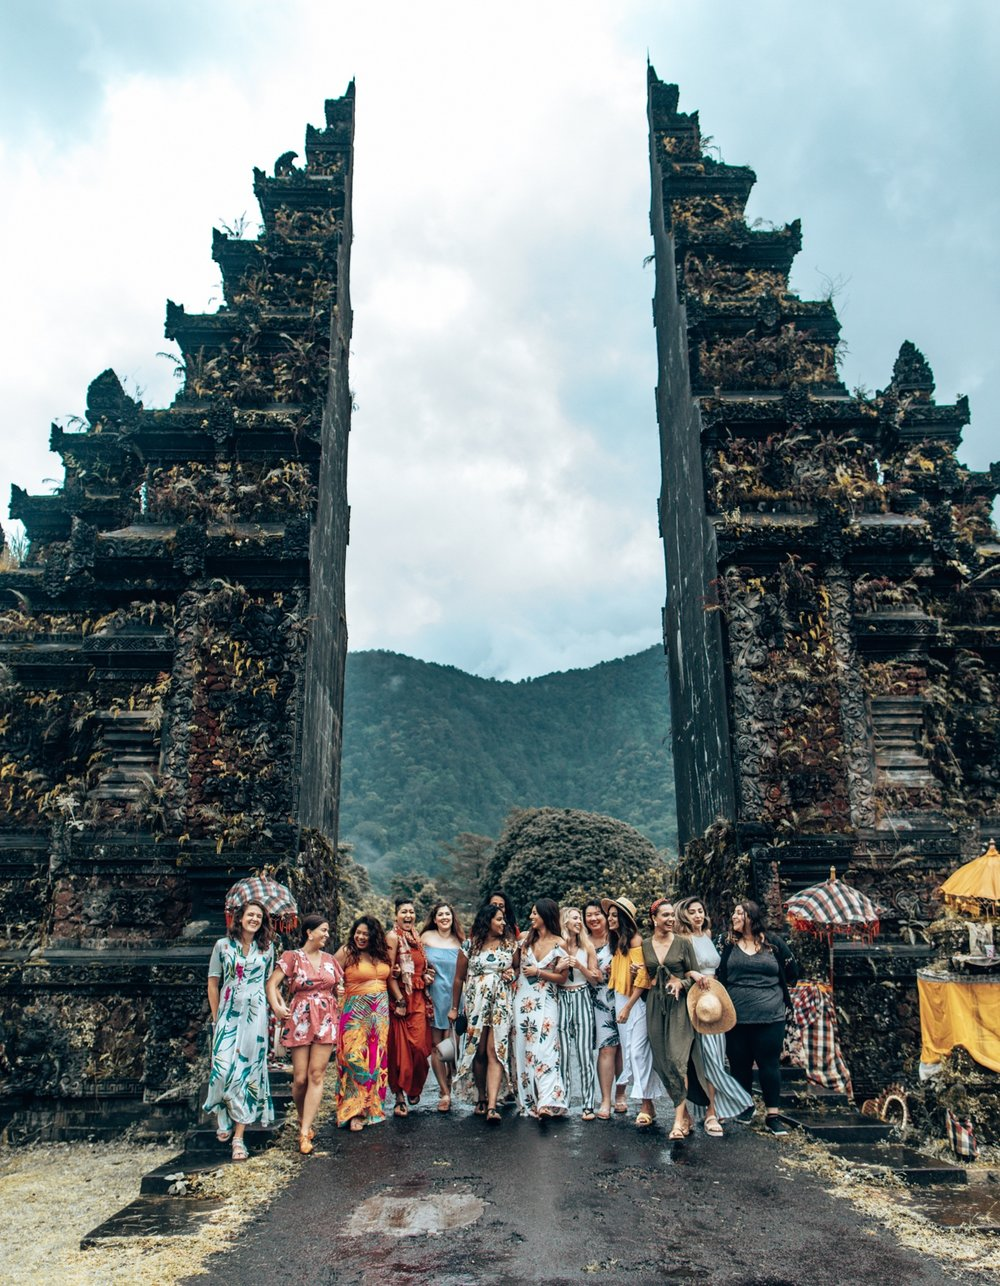 March 4 - March 11, 2020 - 7 nights / 8 daysGroup Size: 16*14 Spots Open*Bali is the ULTIMATE bucket list destination for every girl. Lucky for you we are taking The Girls Trip back to one of the most breathtaking islands in the world. Join us as we explore the Balinese culture and visit some of the most beautiful sights on the island.We're talking about temples, waterfalls, food, and most of all, the people who make this island so beautiful. We will be taking you through an experience you will remember for a lifetime.Here's a little taste of what you can expect:*Boutique Private Villa with Pool, Beautiful Sunsets, and Picture Perfect Backdrops**An Experience Packed Itinerary Customized with Curated Excursions**Local and Specialty Dining Experiences*